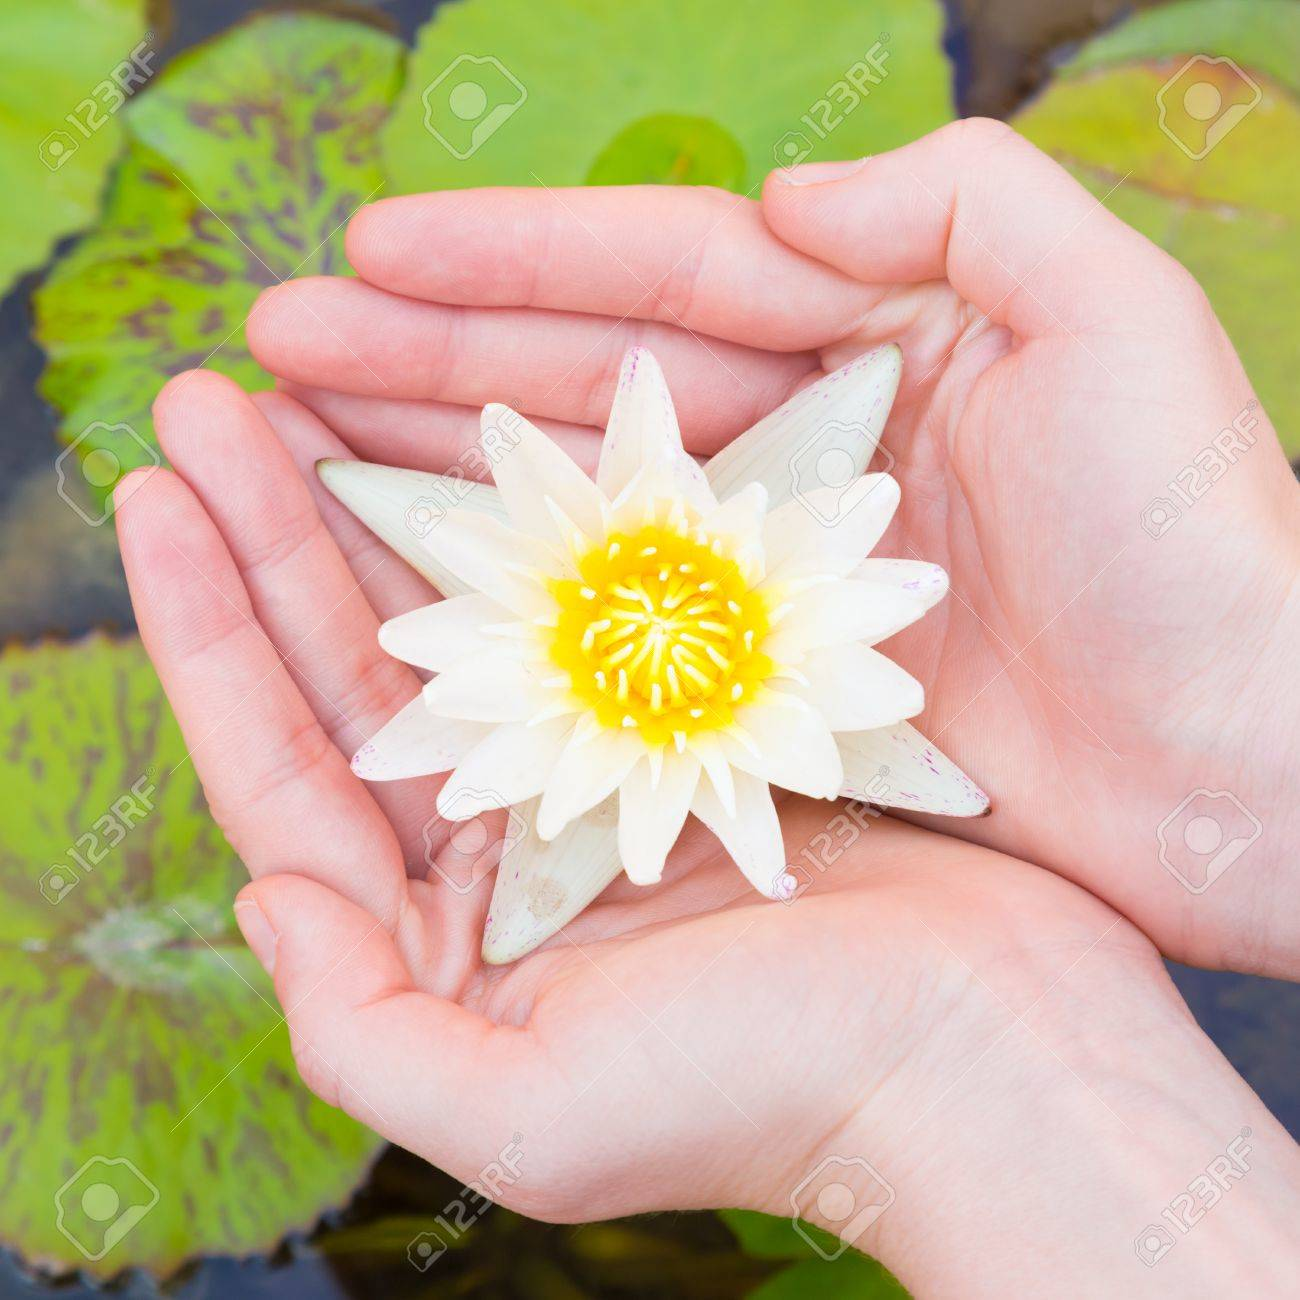 Woman Hands Holding Lotus Flower Against Leaves Background Stock